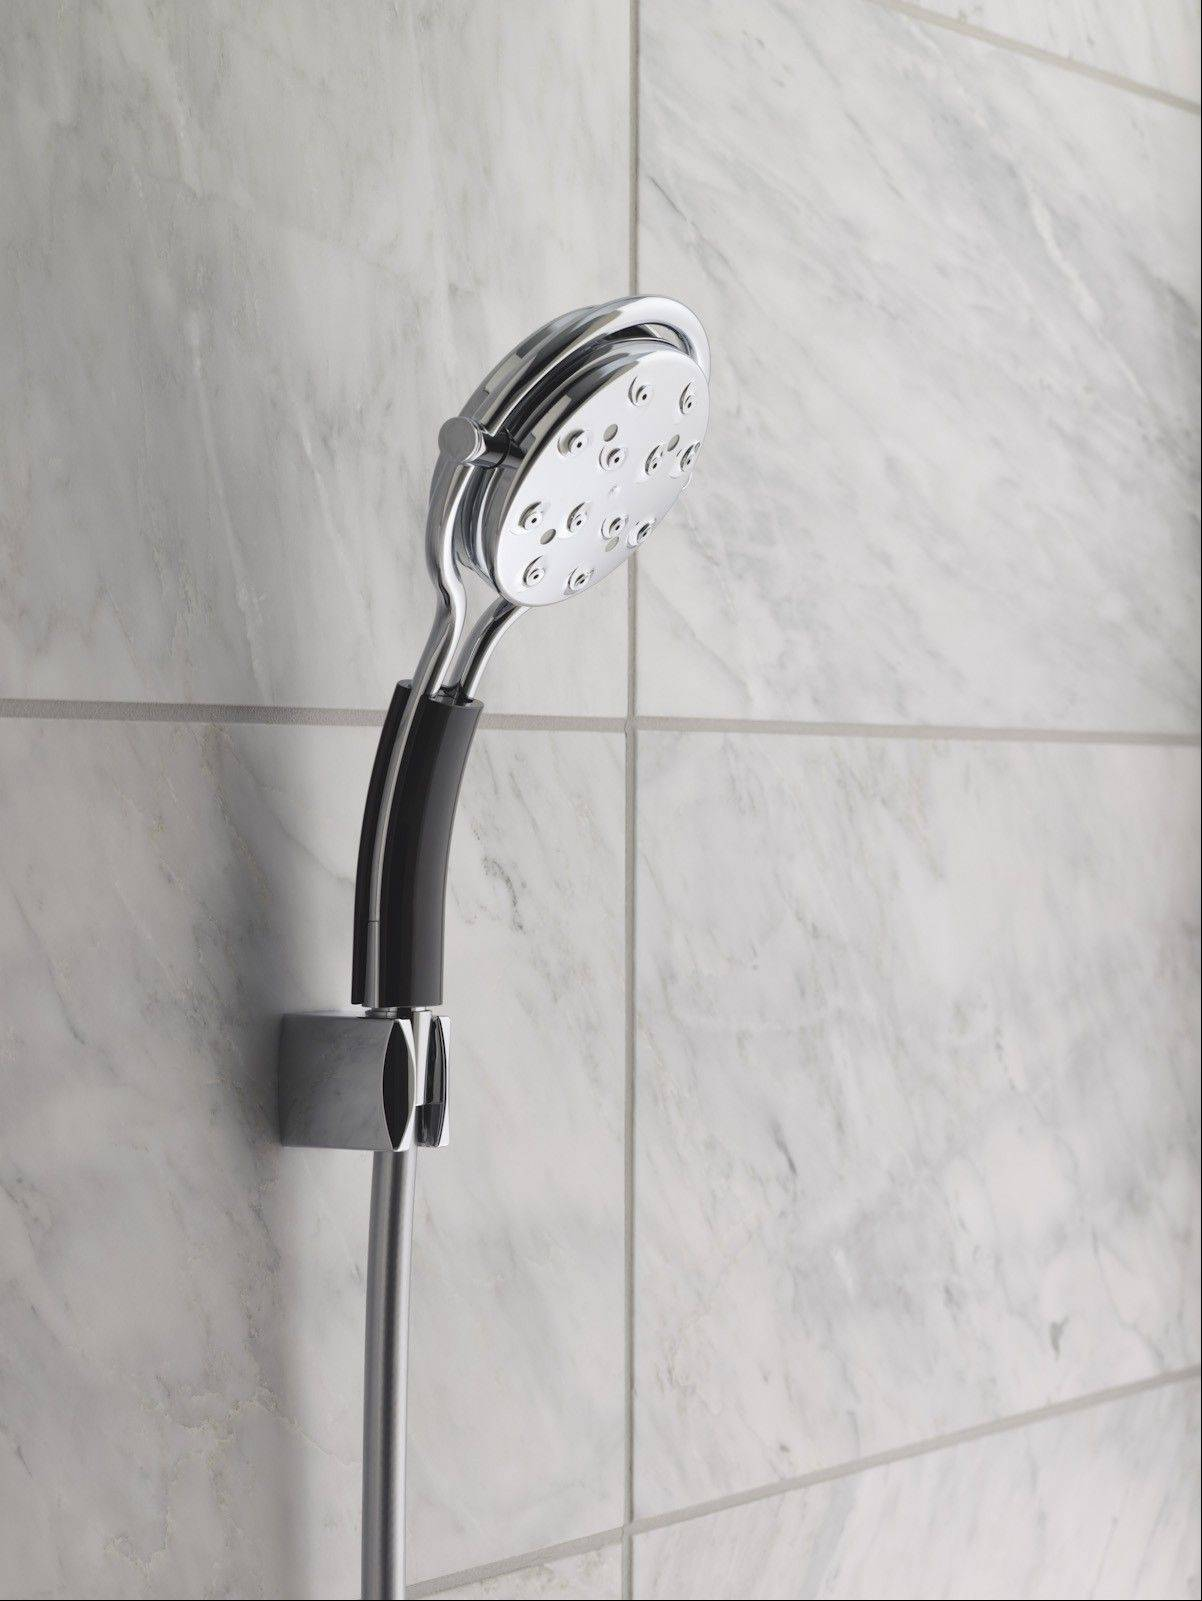 If you're lucky enough to have an outdoor shower, invest in a quality showerhead, complete with a hanging bracket that can attach directly to your shower-arm water pipe.